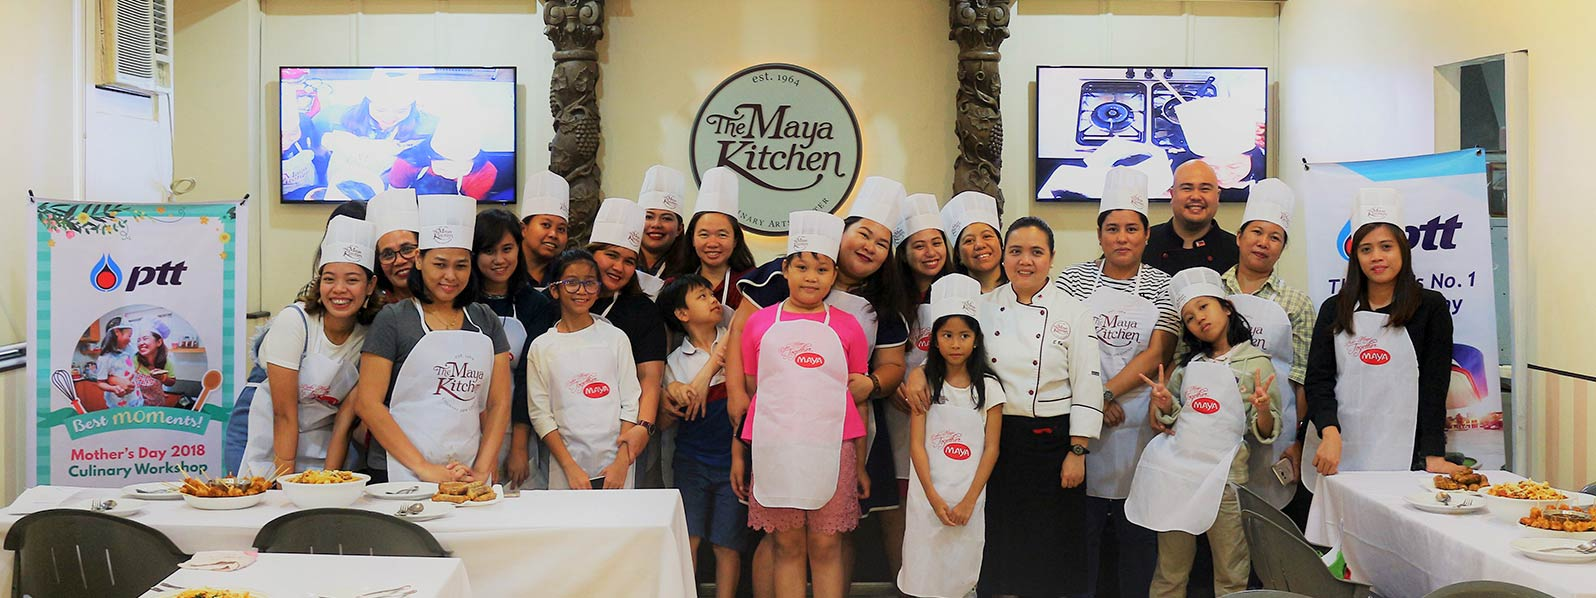 PTT PAYS TRIBUTE TO MOMS